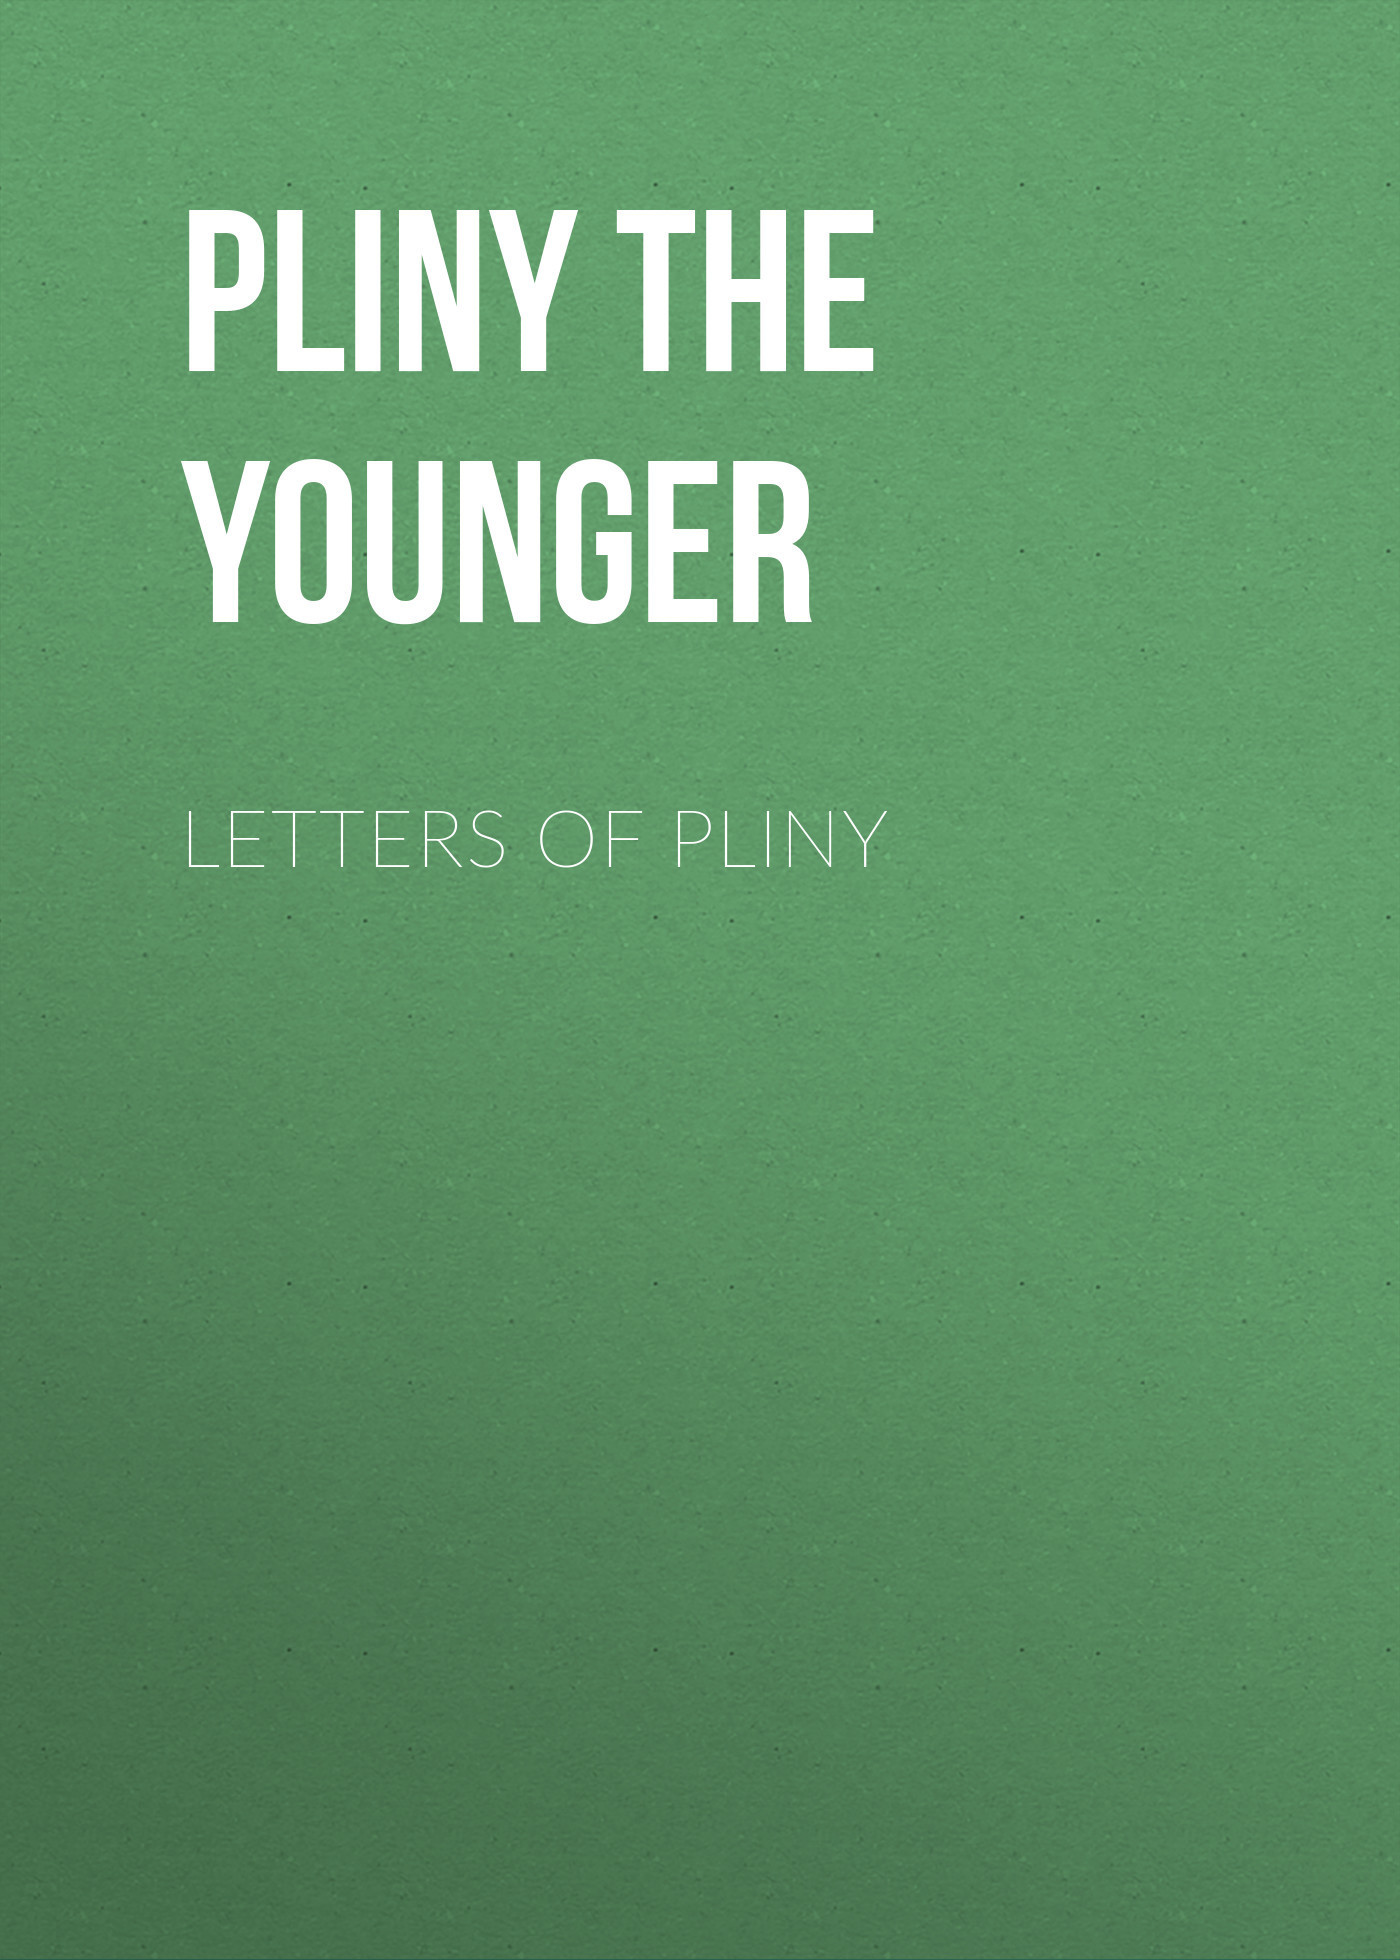 Pliny the Younger Letters of Pliny